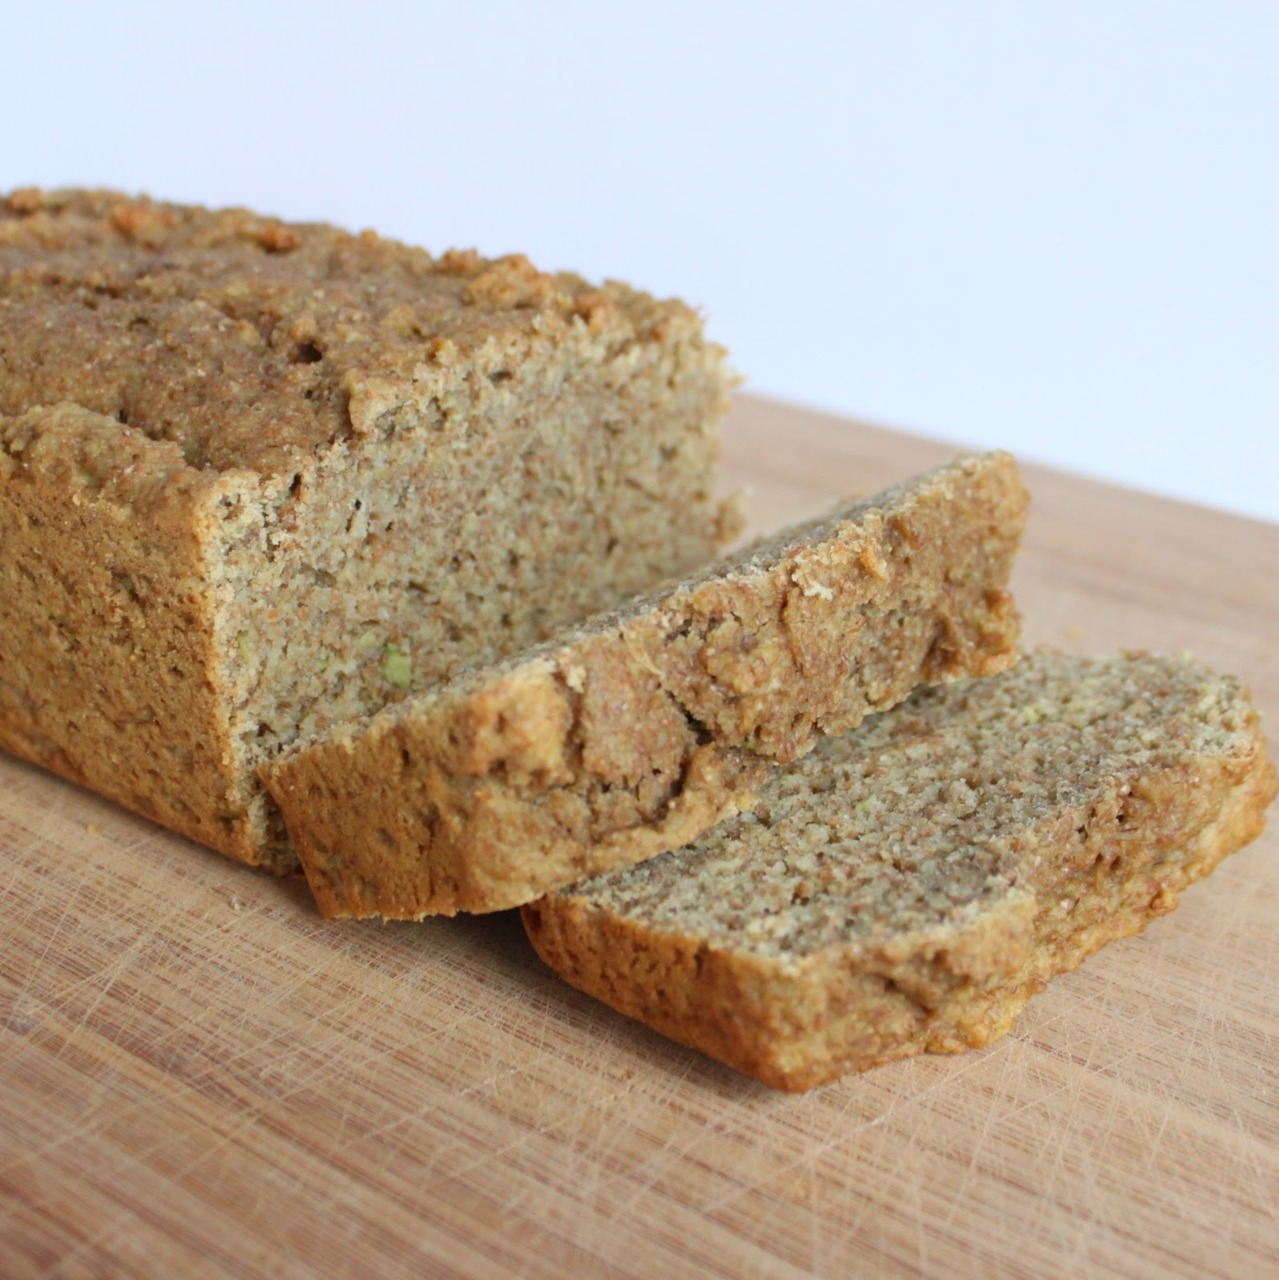 Avocado Wheat Bread 2 cups whole-wheat flour 1/2 cup granulated sugar substitute (splenda) 3/4 tsp baking soda 1/2 tsp salt 2 medium ripe avocados, pitted and mashed  2/3 cup plain greek yogurt 2 eggs 2 tbsp extra-virgin olive oil 1 tsp vanilla extract Preheat oven to 350 degrees. Lightly grease bottom and sides of a 9x13 loaf pan. In a medium bowl combine flour, sugar, baking soda, and salt; whisk till combined. In a large mixing bowl, combine avocados, yogurt, eggs, olive oil, and vanilla; beat on low till well combined. Slowly add-in dry ingredients to avocado mixture beating only till combined. Spoon batter into prepared pan and even out the top. Bake for 40 minutes or until a toothpick entered in center of bread comes out clean. Cool bread in pan for 5 minutes, then cool completely on metal rack. Ahh I must make this soon! I need to get wheat flour. Here's the link where I found this recipe: http://www.squirrelbakes.com/2011/02/avocado-wheat-bread.html There was no calorie info so I drafted something up myself using the individual ingredients. I also researched to see if calorie content changes, raw vs. cooked, and for the most part NO unless you're cooking something like meat in which the fat will physically be melted off the meat. For the bread, everything in is everything you eat. You can read this great forum here if you're interested in understanding the chemistry behind this: http://boards.straightdope.com/sdmb/archive/index.php/t-551691.html Calorie Calculation (whole loaf): 2 cups whole wheat flour:      520 cals, 36 cals from fat, 4 g fat, 104 g carbs, 16 g fiber, 5 g protein 1/2 cup sugar (I'm not      using splenda): 387 cals, 0 cals from fat, 100 g carbs, 0 g protein 3/4 tsp baking soda: 0      cals 1/2 tsp salt: 0 cals 2 medium avocados: 578      cals, 480 cals from fat, 70.8 g fat, 29.8 g carbs, 23.6 g fiber, 9 g      protein 2/3 cup non plain greek      yogurt Chobani: 90 cals, 6 g carbs, 16 g protein 2 large whole eggs: 144      cals, 96 cals from fat, 10 g fat, 0.8 g carbs, 12.6 g protein 2 tbsp extra virgin olive      oil: 240 cals, 240 cals from fat, 28 g fat 1 tsp vanilla extract: 37      cals, 0 cals from fat, 1.6 g carbs, 0 g protein  Looks great! At 100 cals a piece, I get 2 g of fiber and 2 g of protein. Not bad, not bad. I would like more fiber and protein though. I could add whey protein but the cals would go significantly up. Oh I know, just put non fat cottage cheese on top!